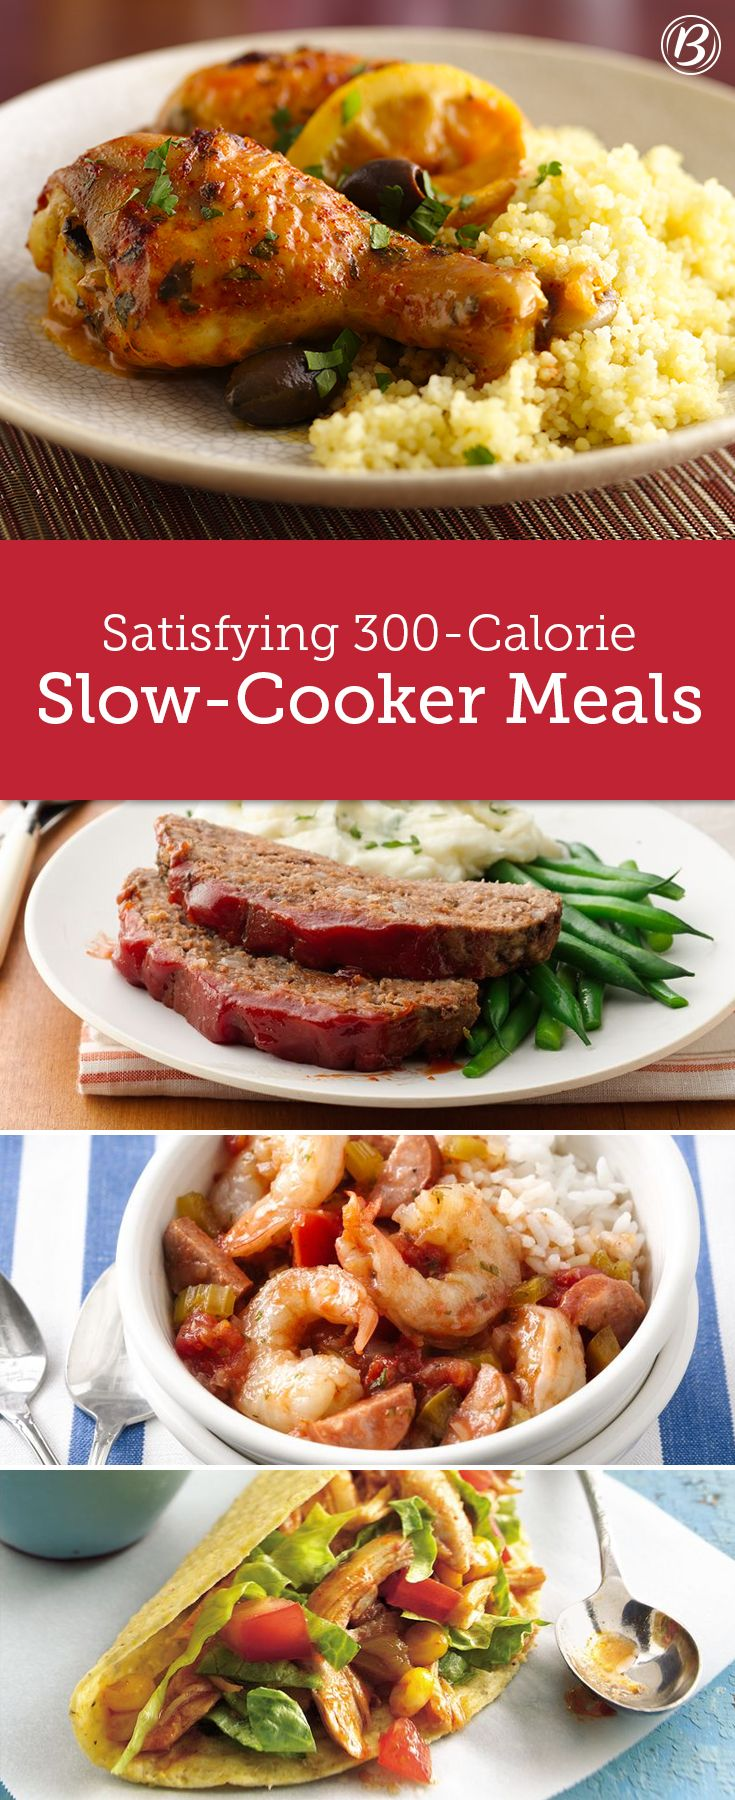 These suppers are everything you're craving—filling, warming and undeniably delicious—with the bonus being 300 calories or less per serving. Better yet, they're made in your slow cooker for a no-fuss meal that cooks while you're away.